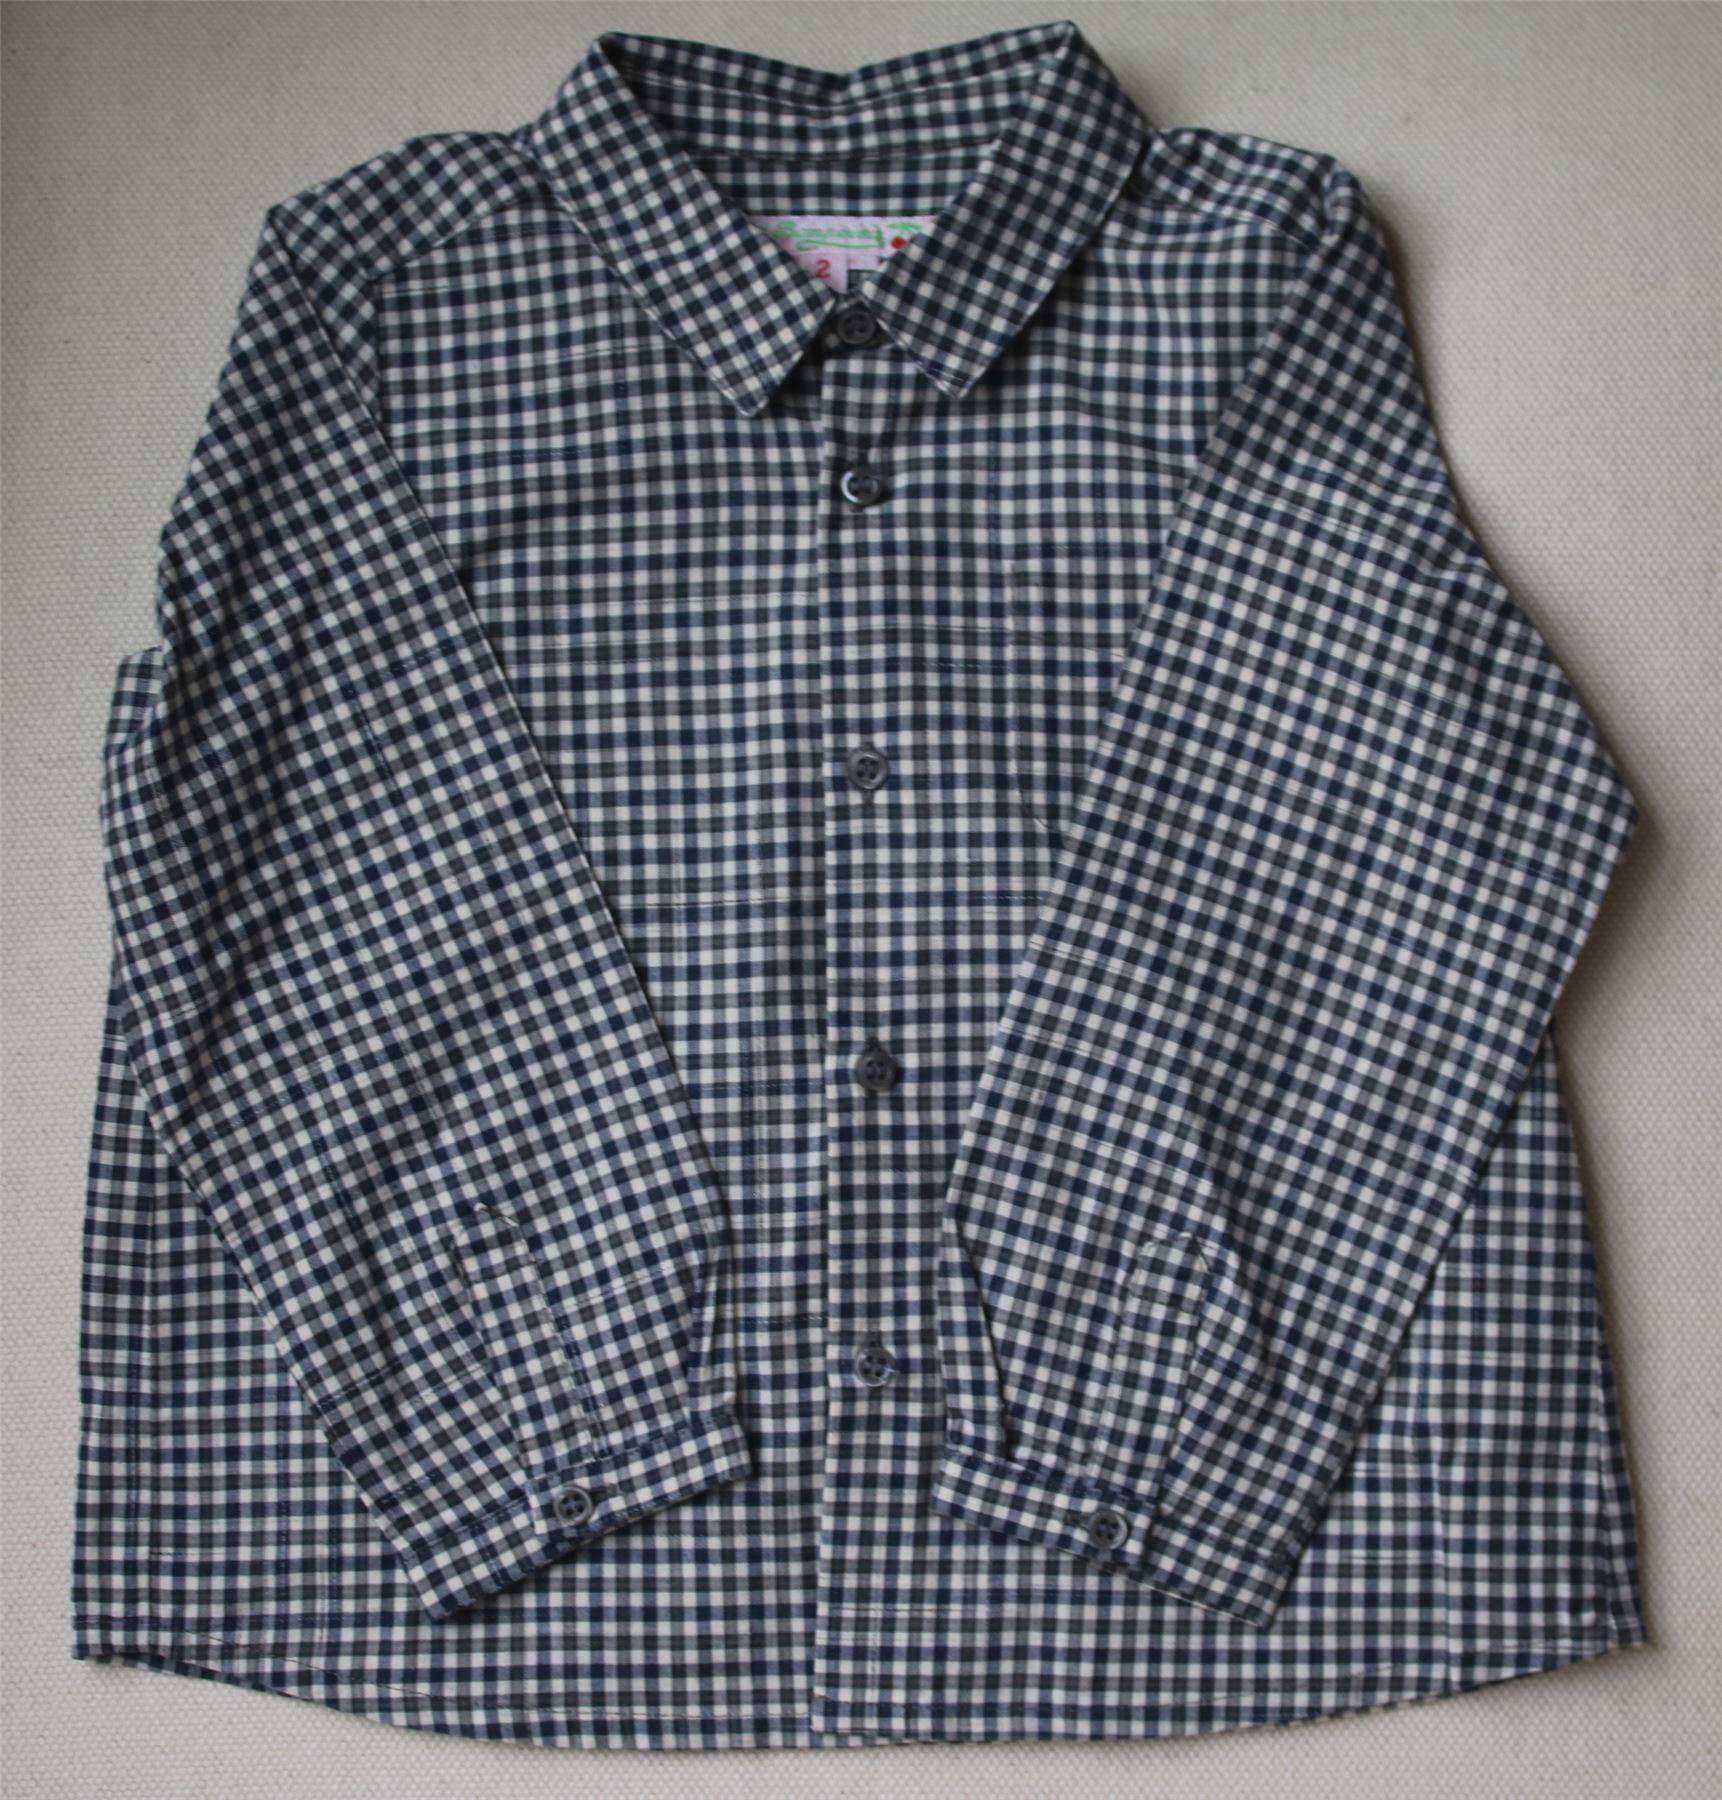 BONPOINT BABY NAVY BLUE CHECK SHIRT 2 YEARS